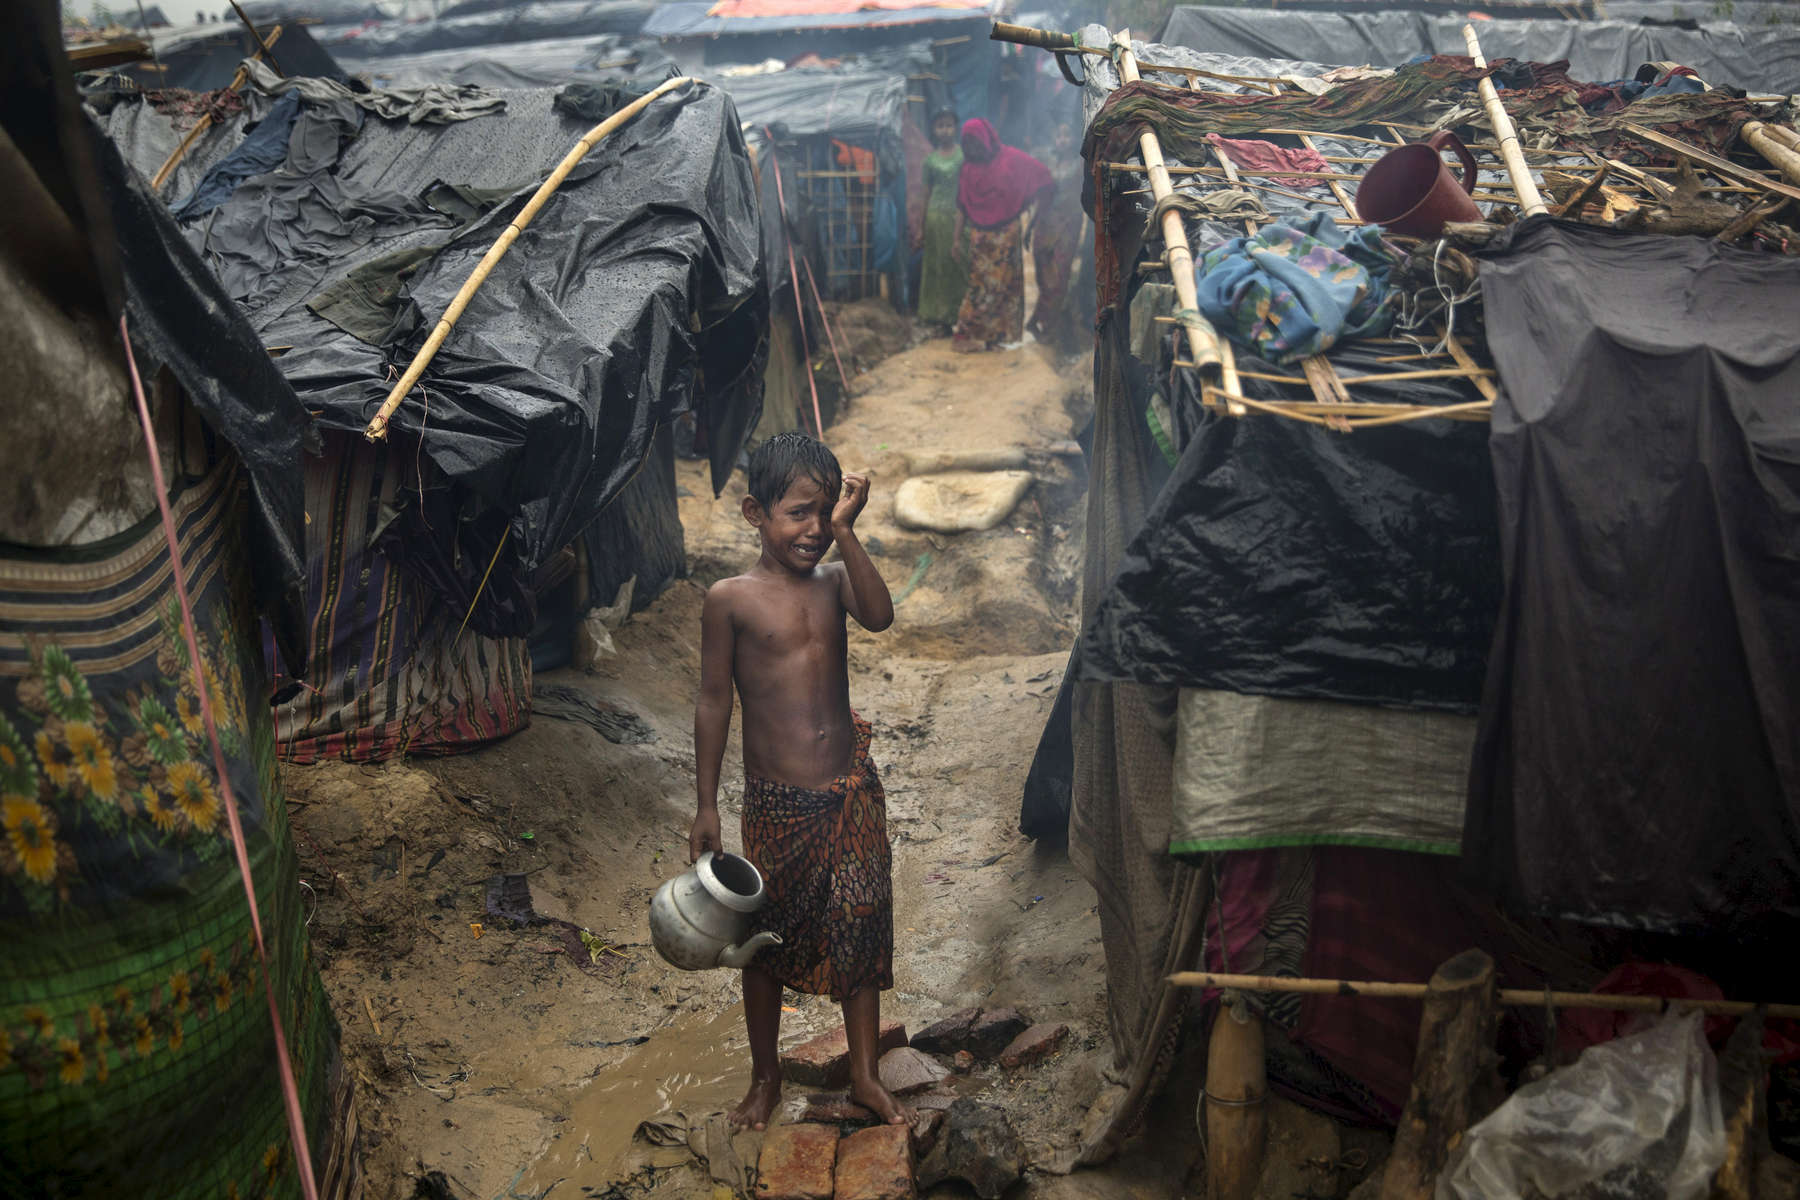 THAINKHALI, BANGLADESH - OCTOBER 7: A Rohingya boy cries as monsoon rains continue to batter the area causing more difficulties October 7, Thainkhali camp, Cox's Bazar, Bangladesh. e.